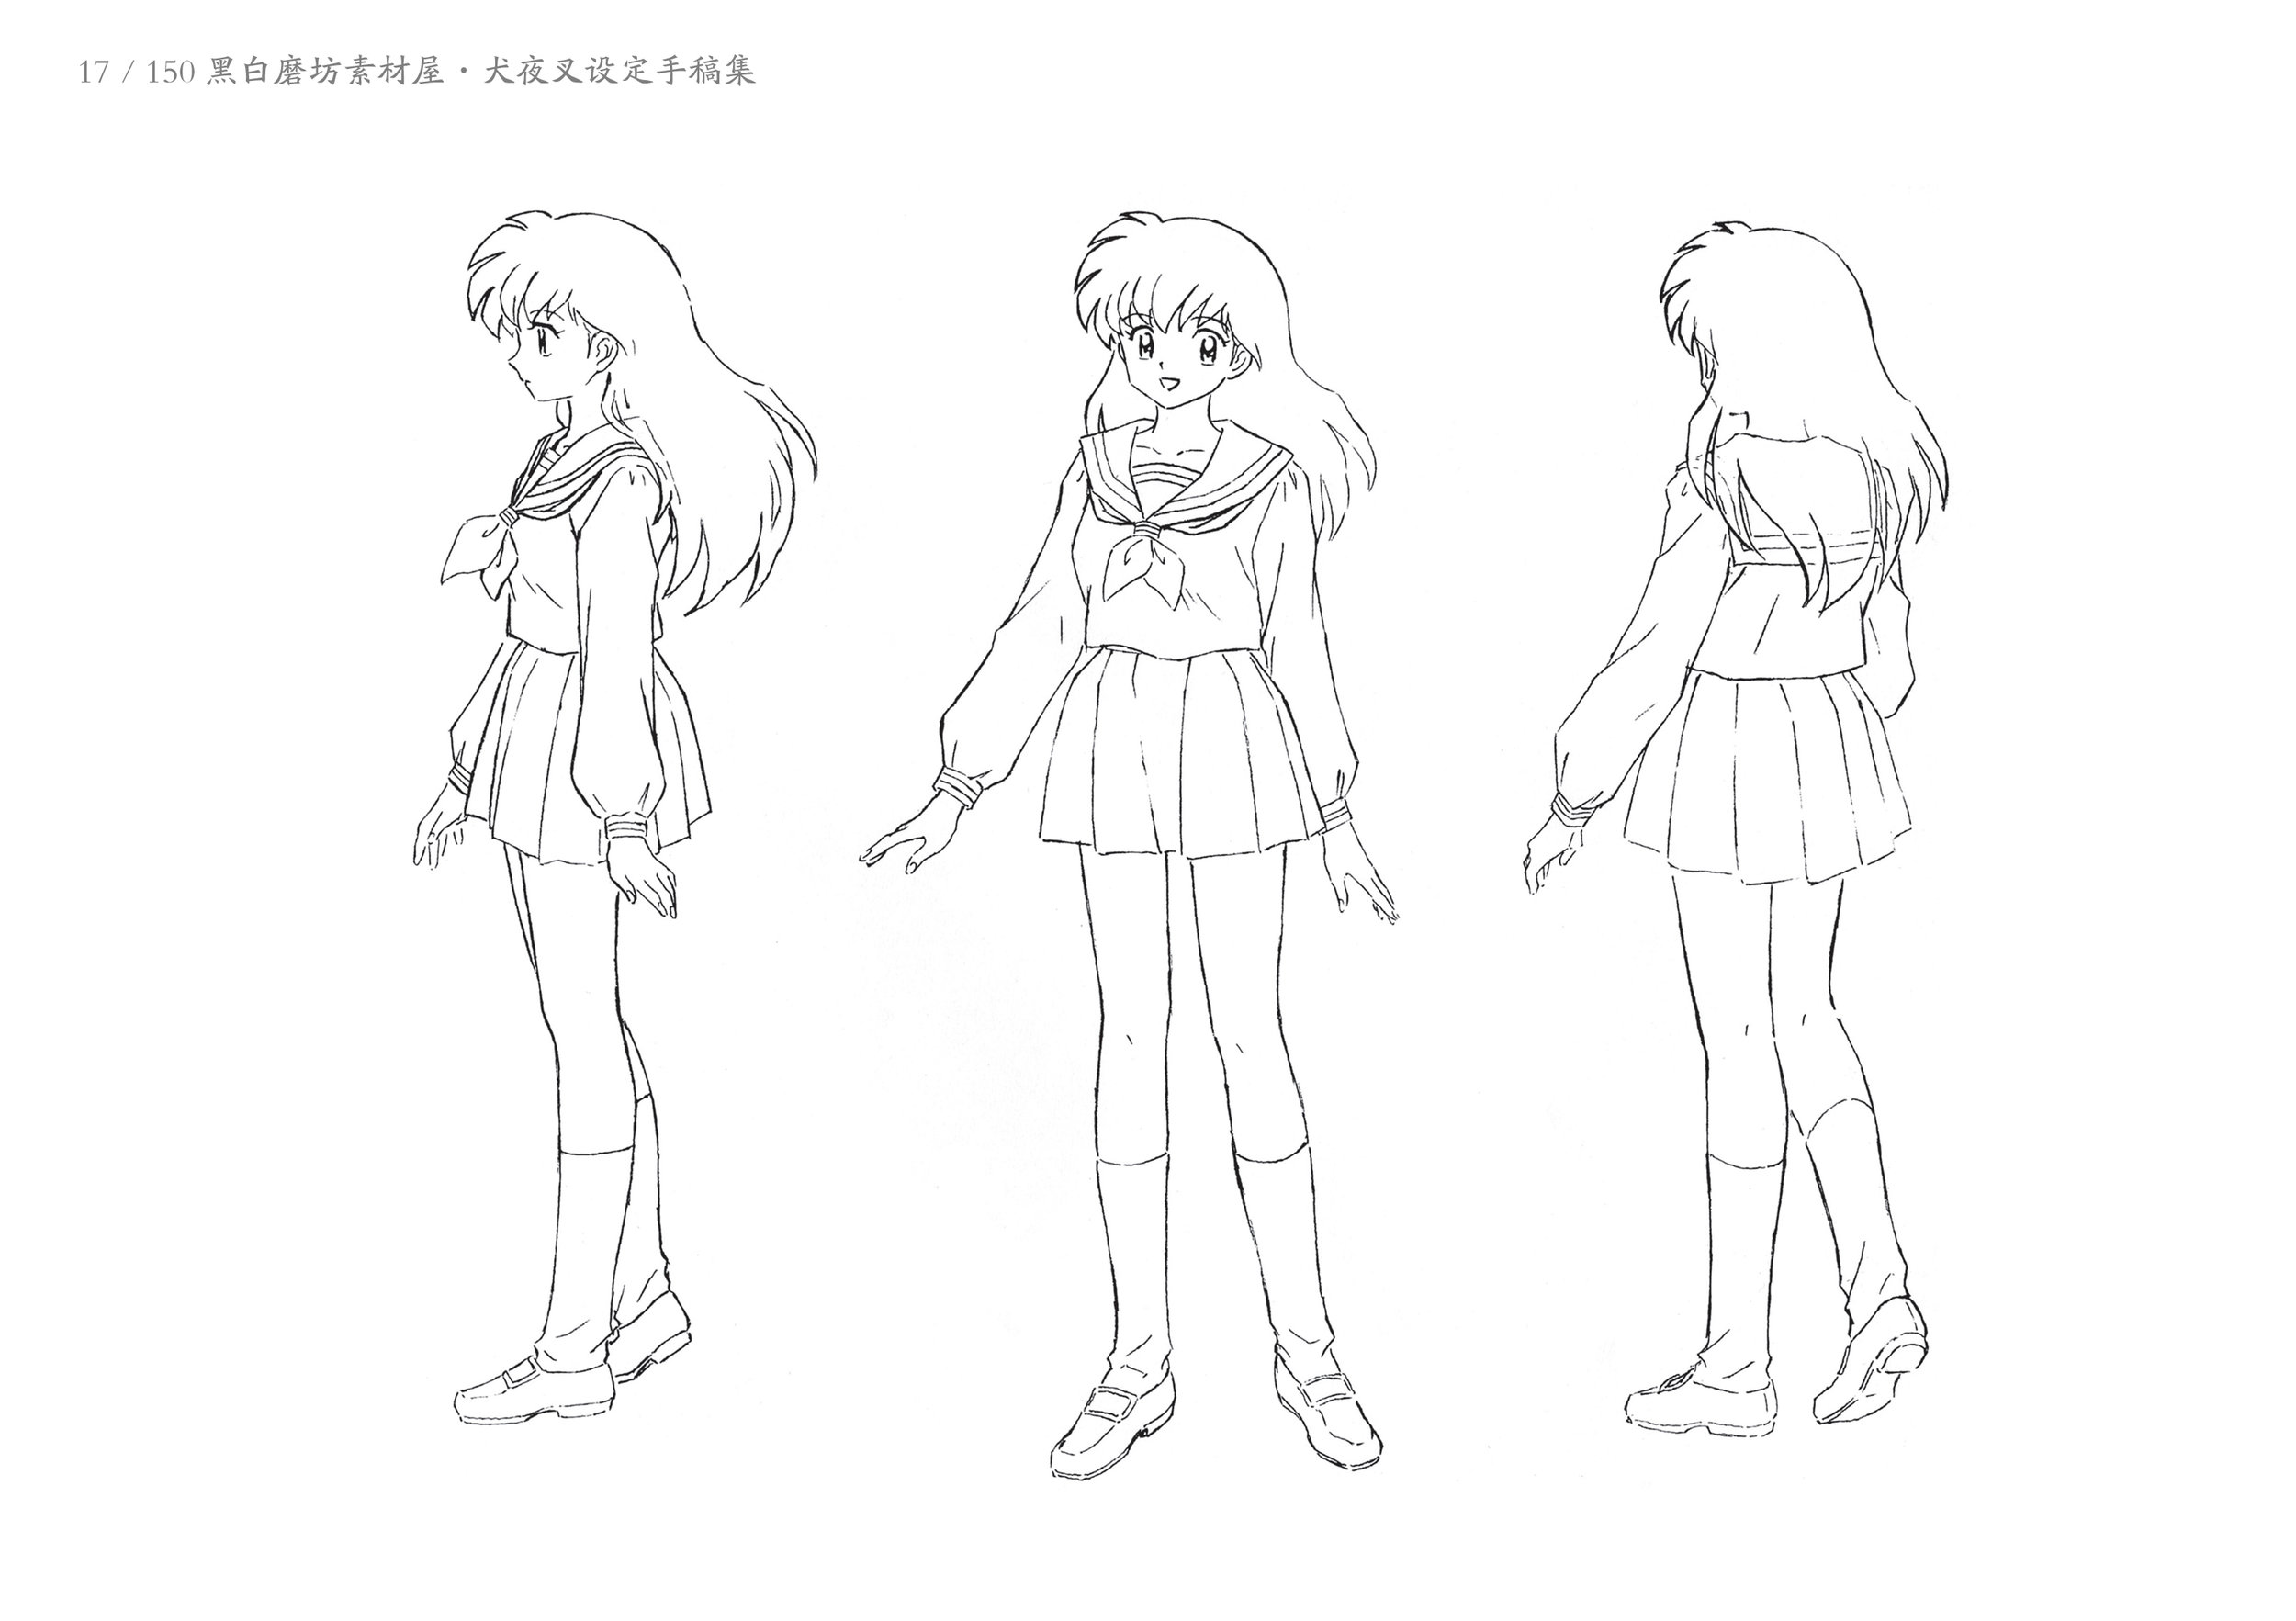 Art of the Inuyasha A - 14.jpg